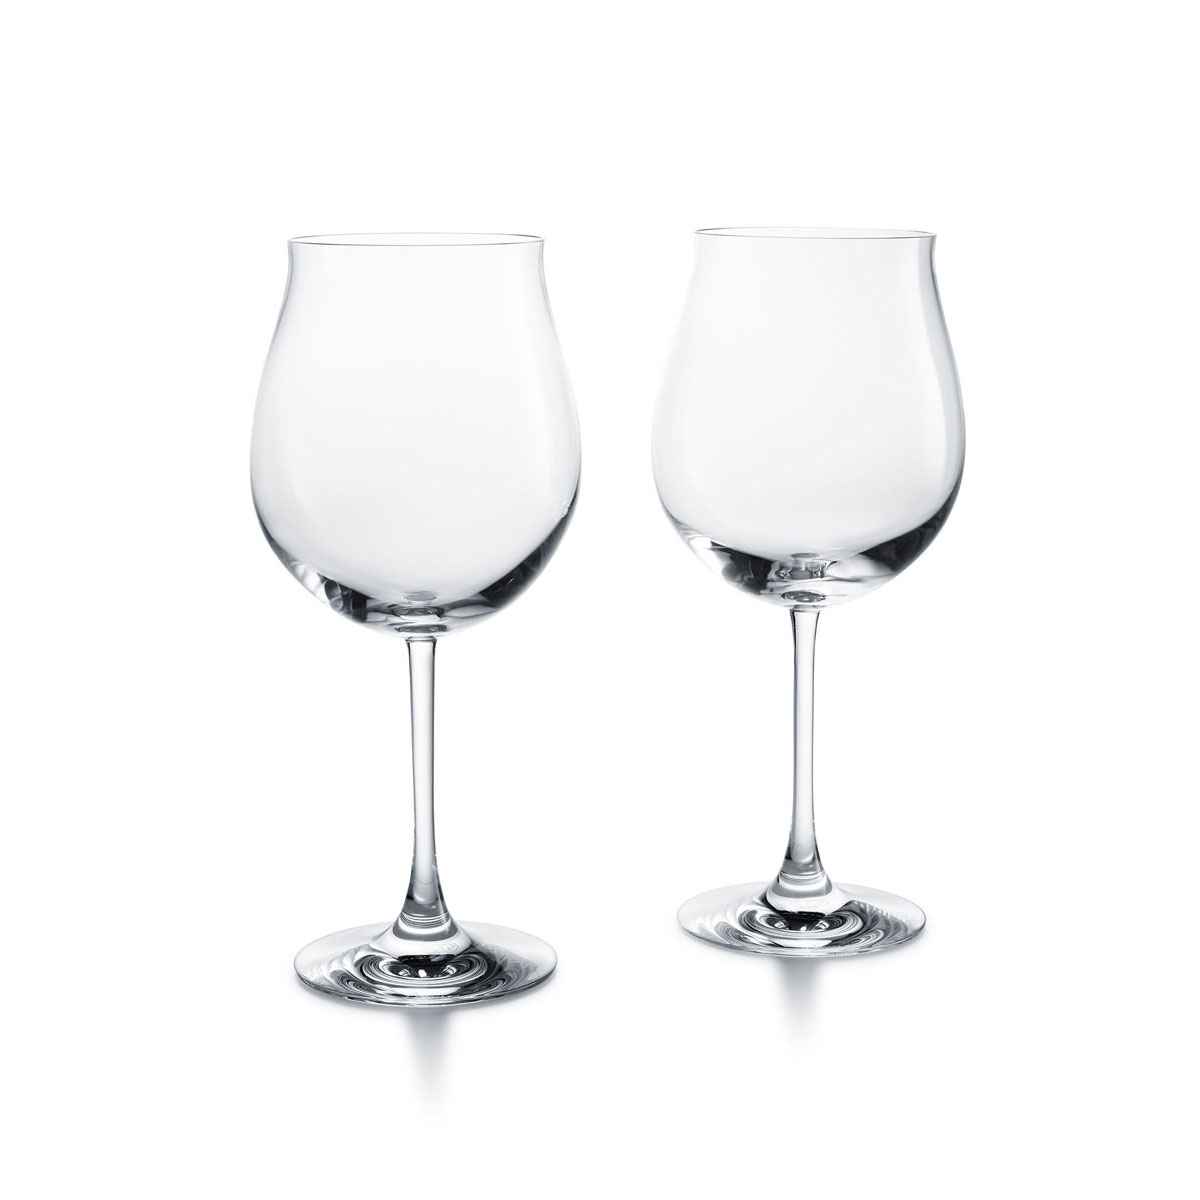 Baccarat Crystal, Degustation Grand Burgundy, Boxed Pair